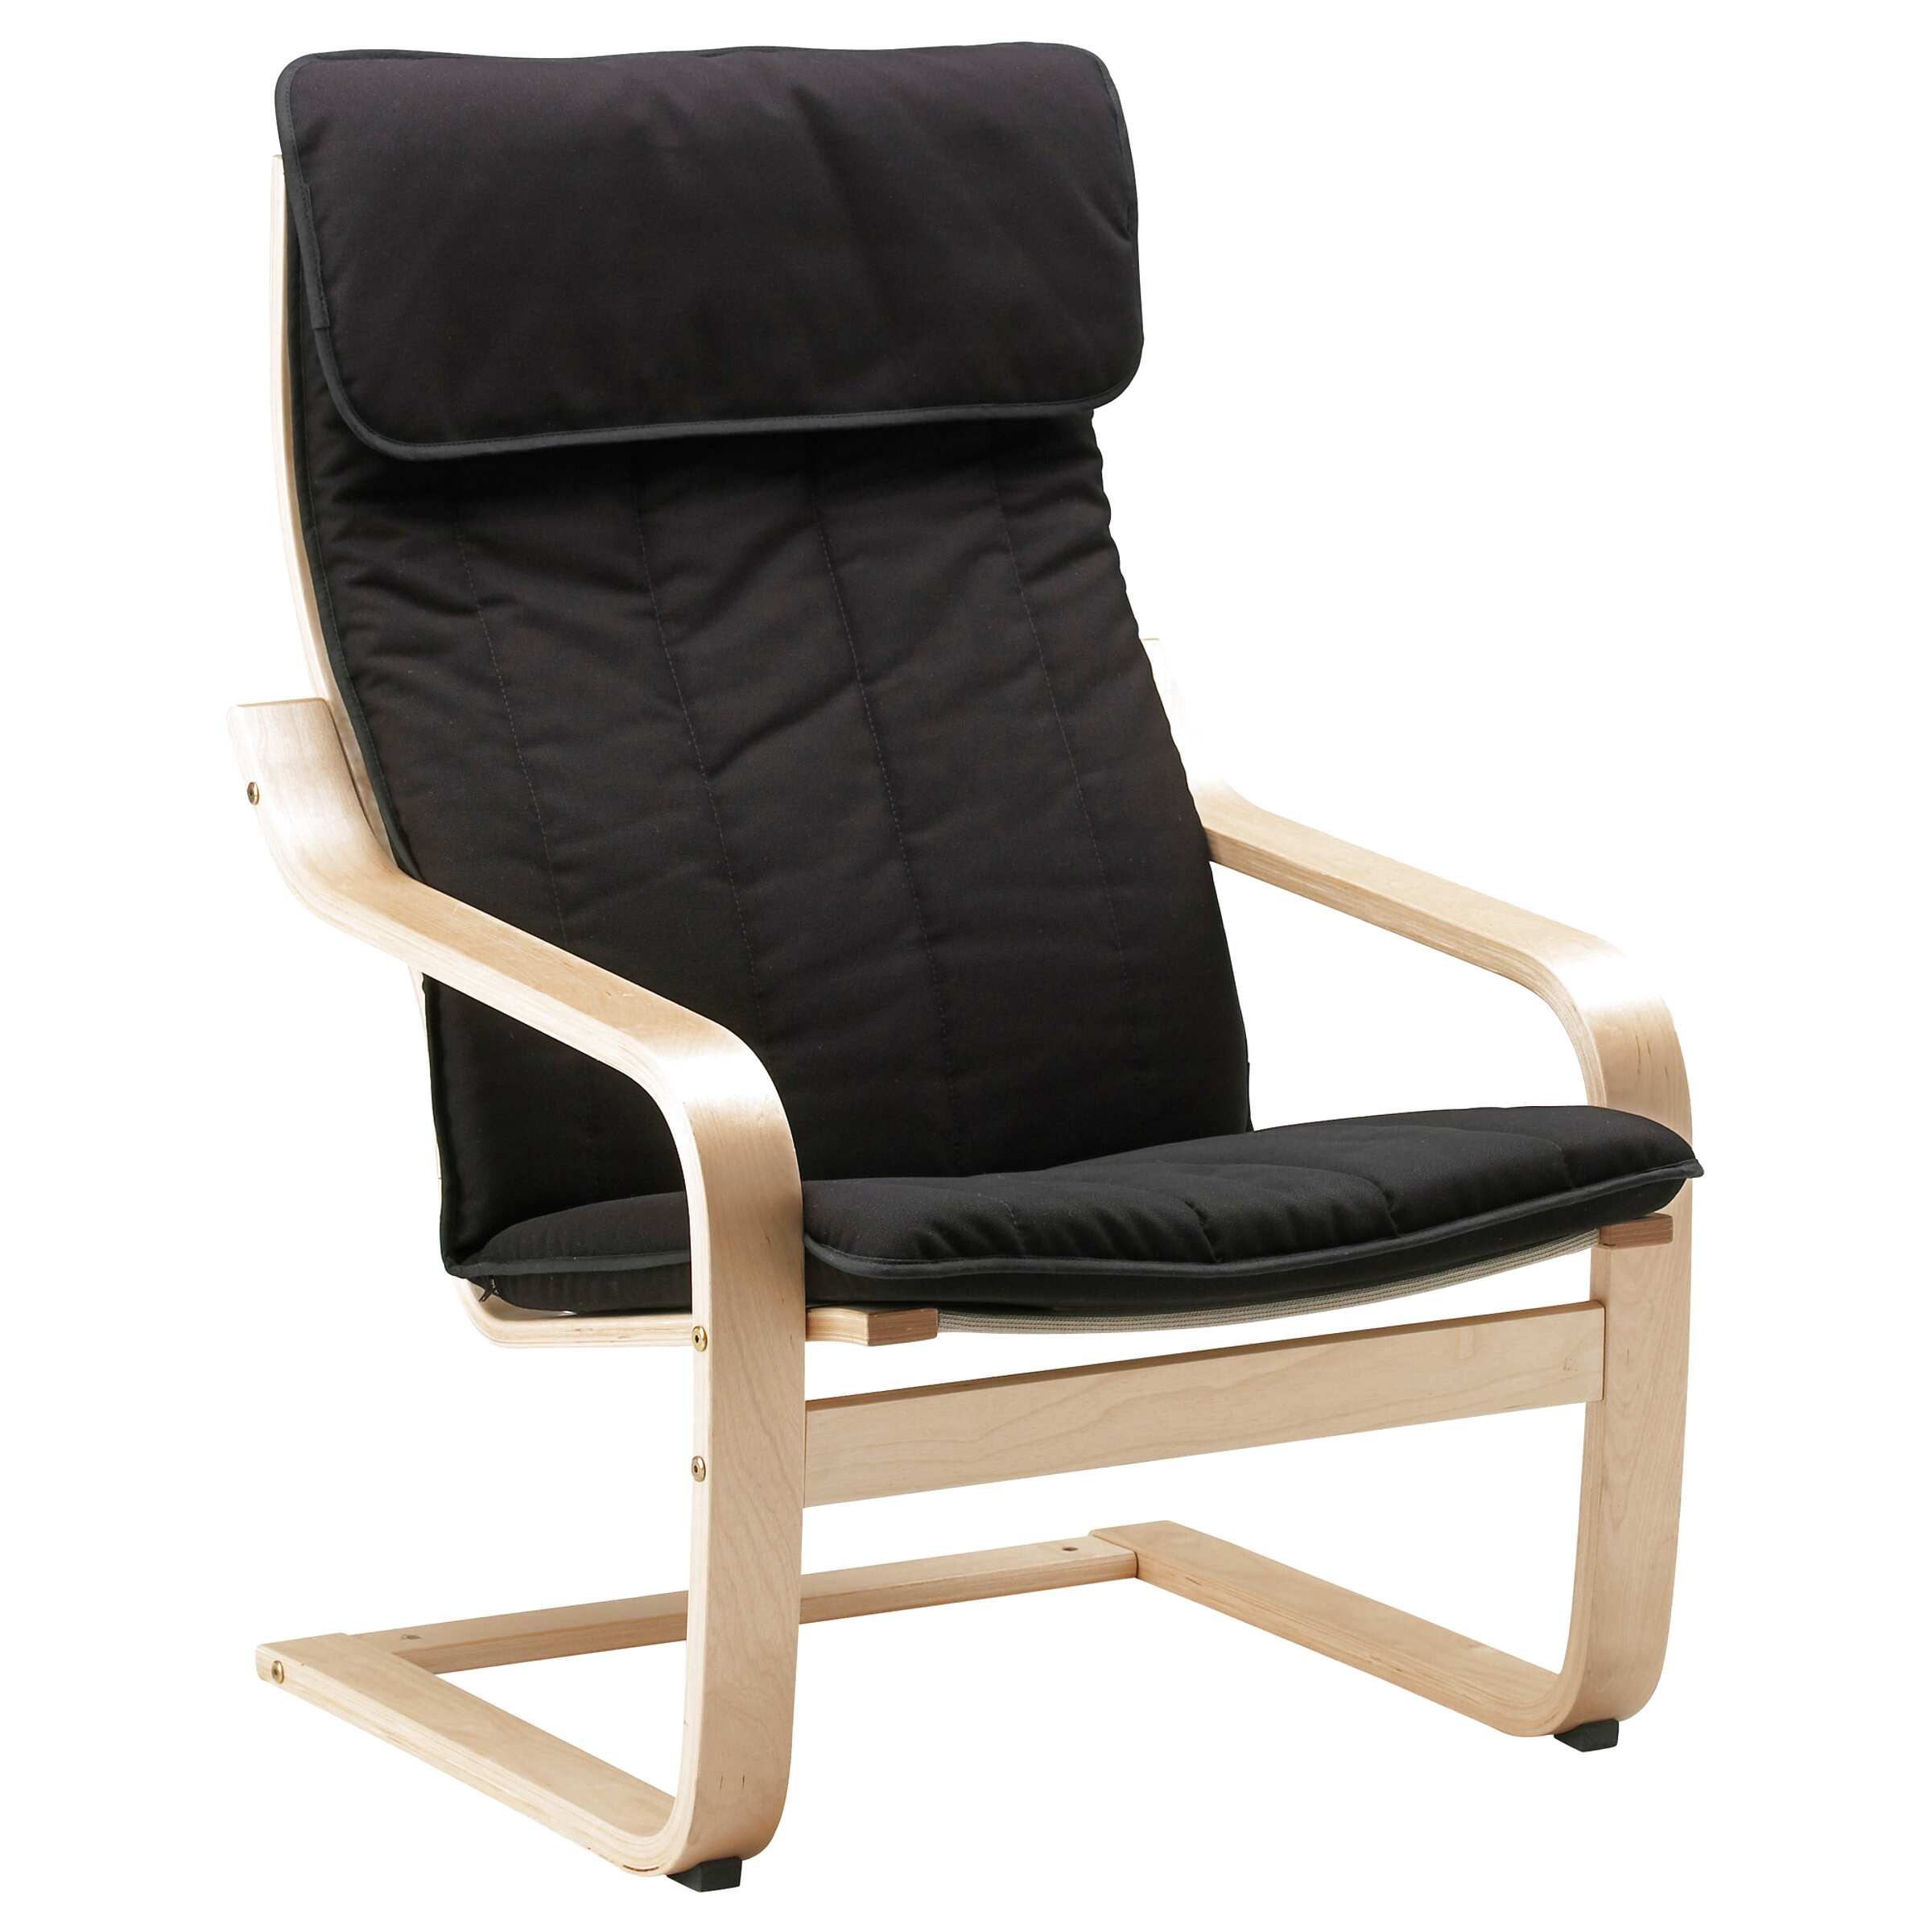 Ikea Poang Armchair For Sale In Uk View 60 Bargains